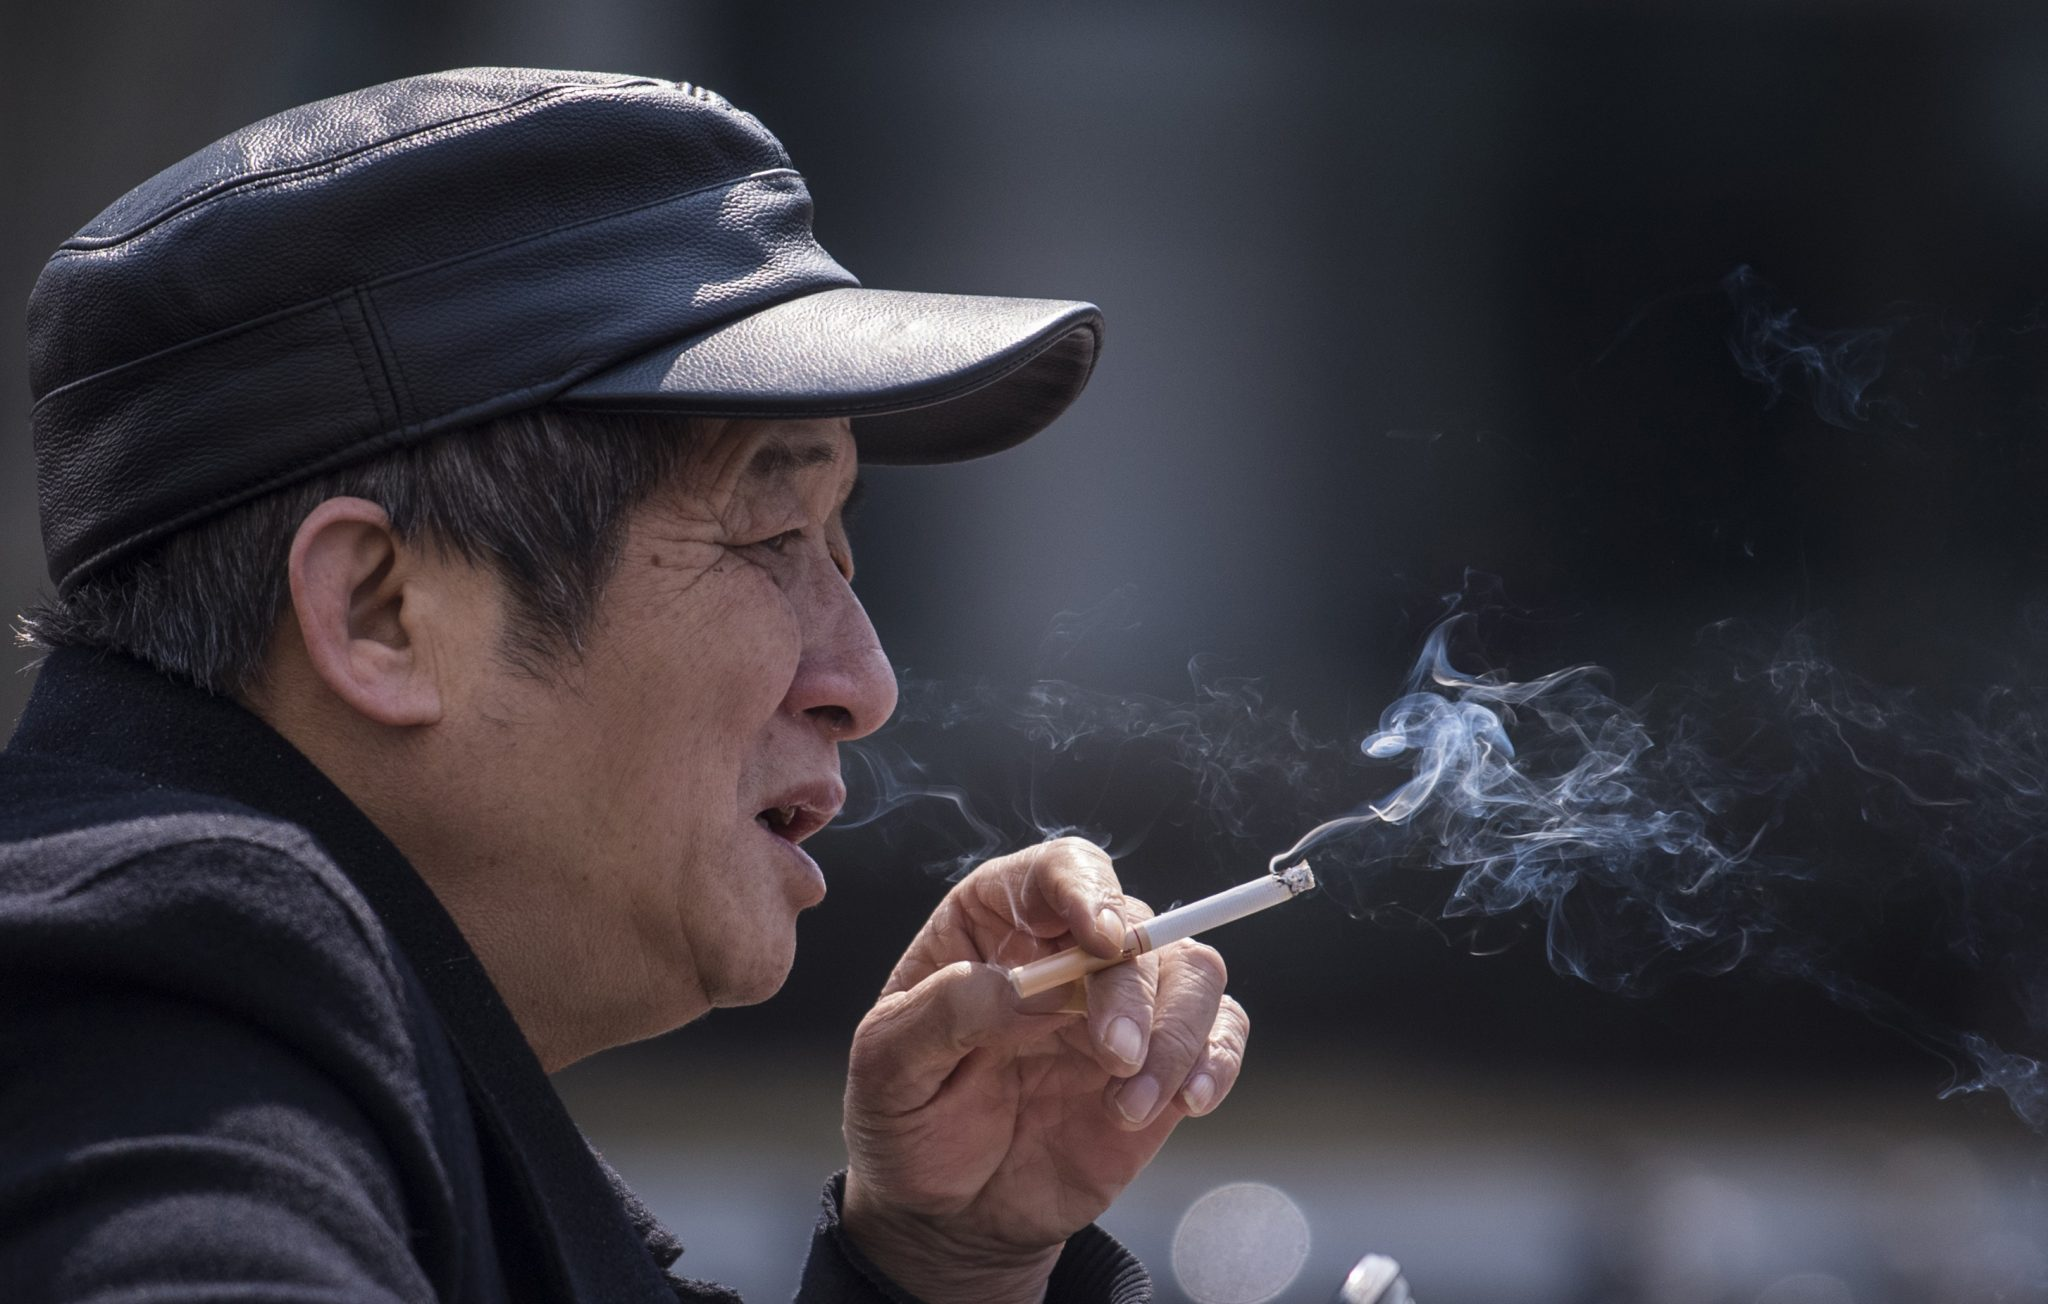 national public smoking ban In most cases, smoking is banned in areas open to the general public, but allowed in areas that are accessed only by government officials, thus implying that civil servants and politicians have.